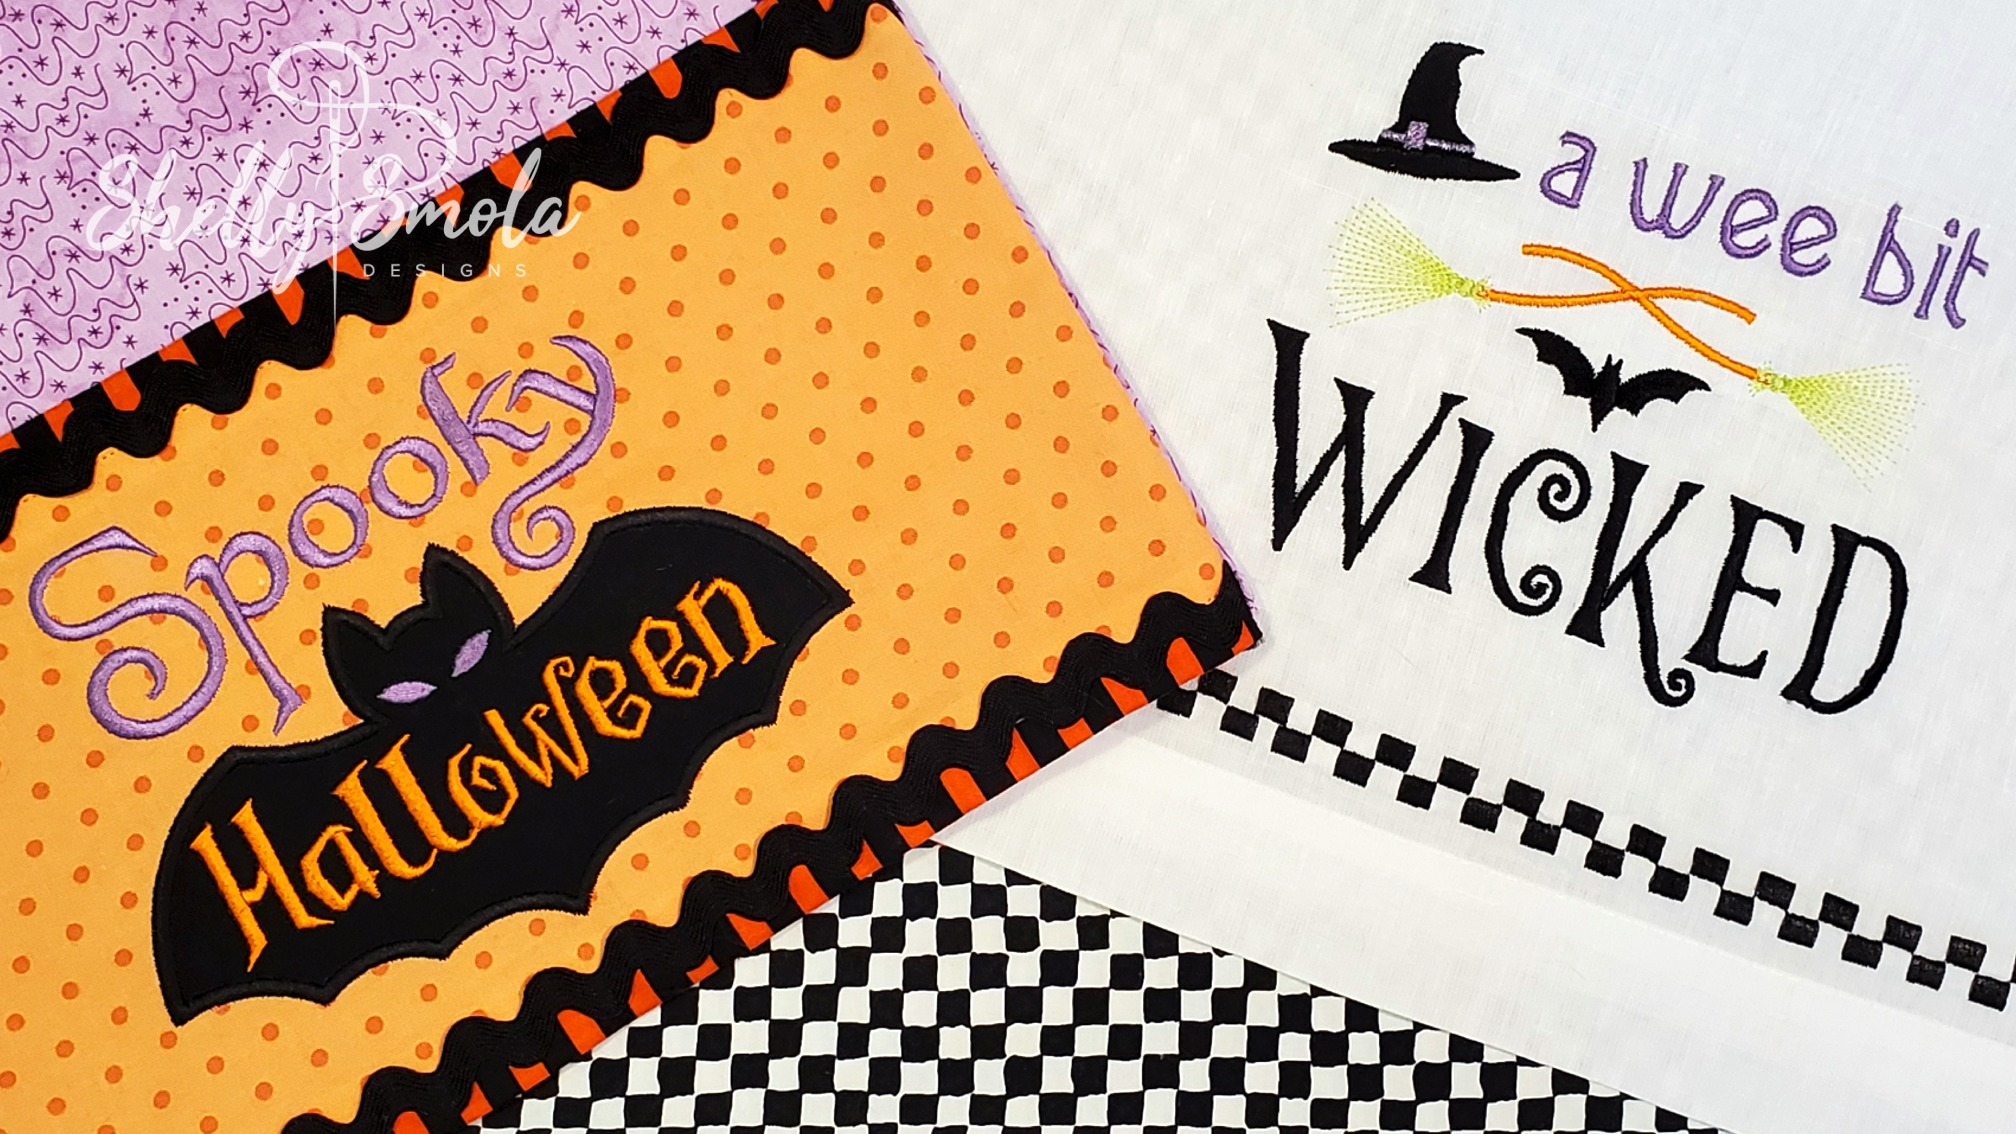 A Wee Bit Wick and Spooky Halloween by Shelly Smola